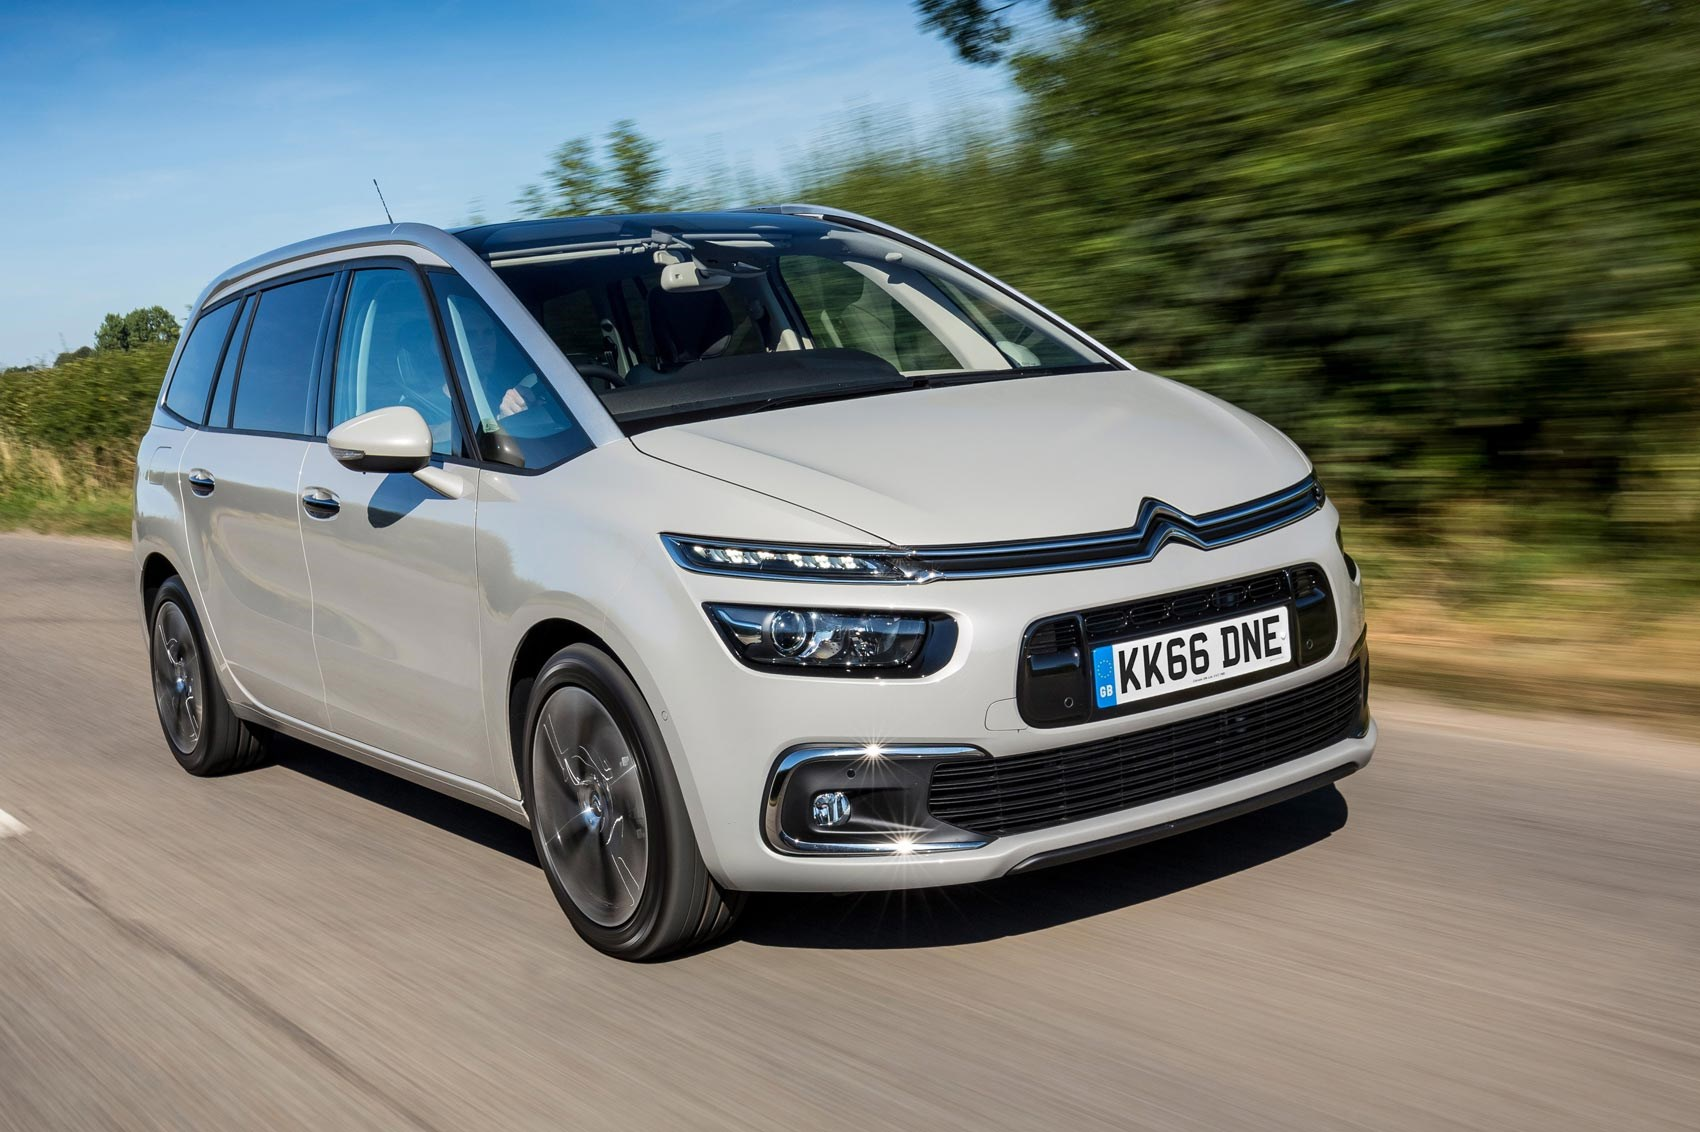 citroen grand c4 picasso flair bluehdi 150 2016 review car magazine. Black Bedroom Furniture Sets. Home Design Ideas